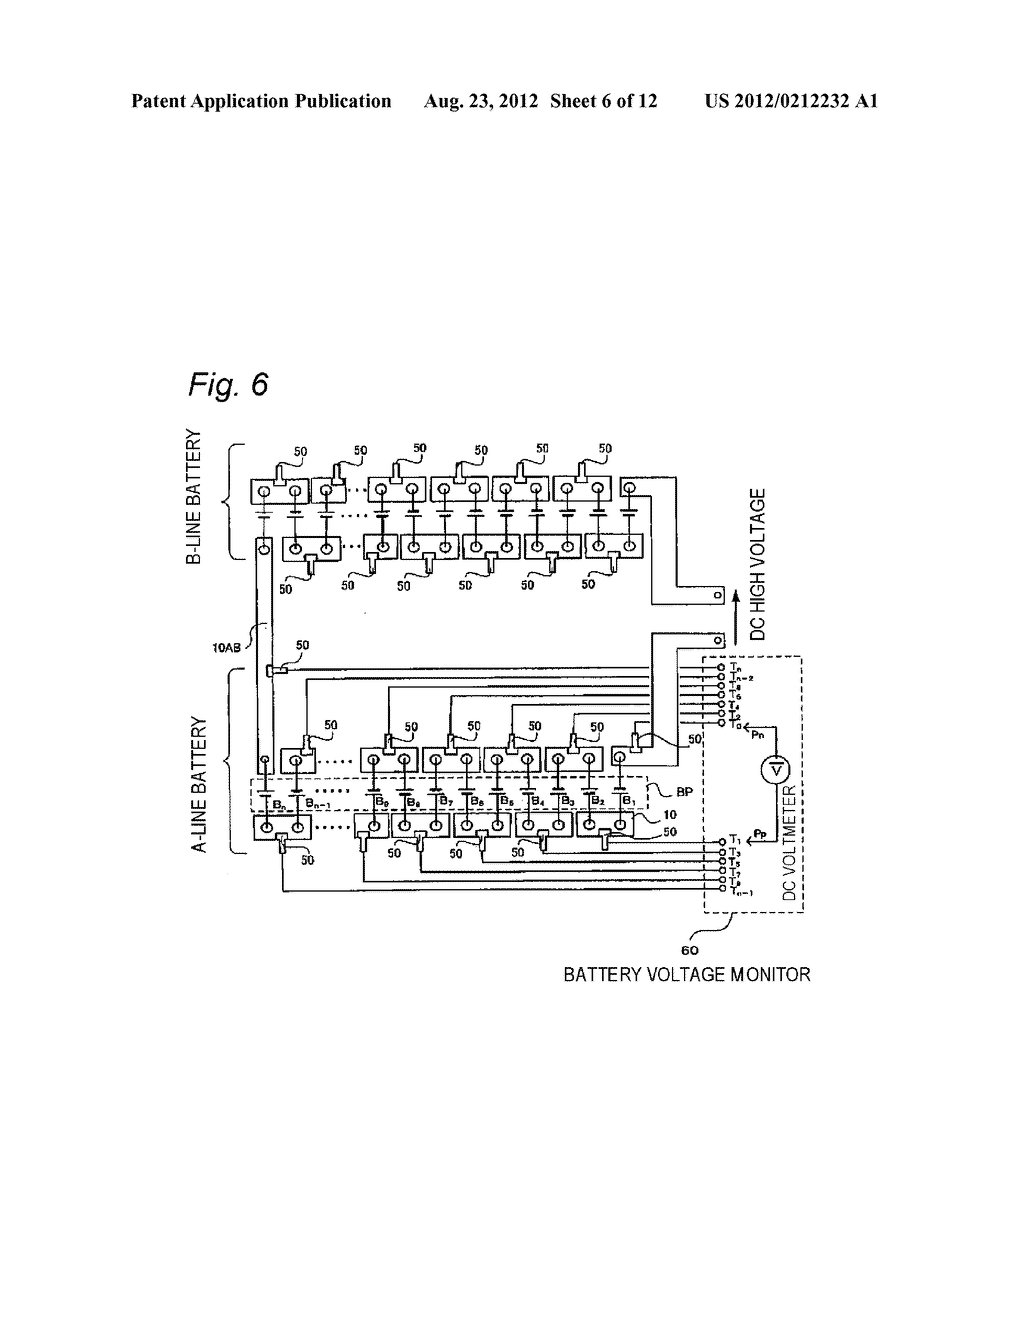 Busbar For Battery Electrode Post Connection And Voltage 12 Volt Bus Bar Wiring Diagram Monitor Using The Same Schematic Image 07